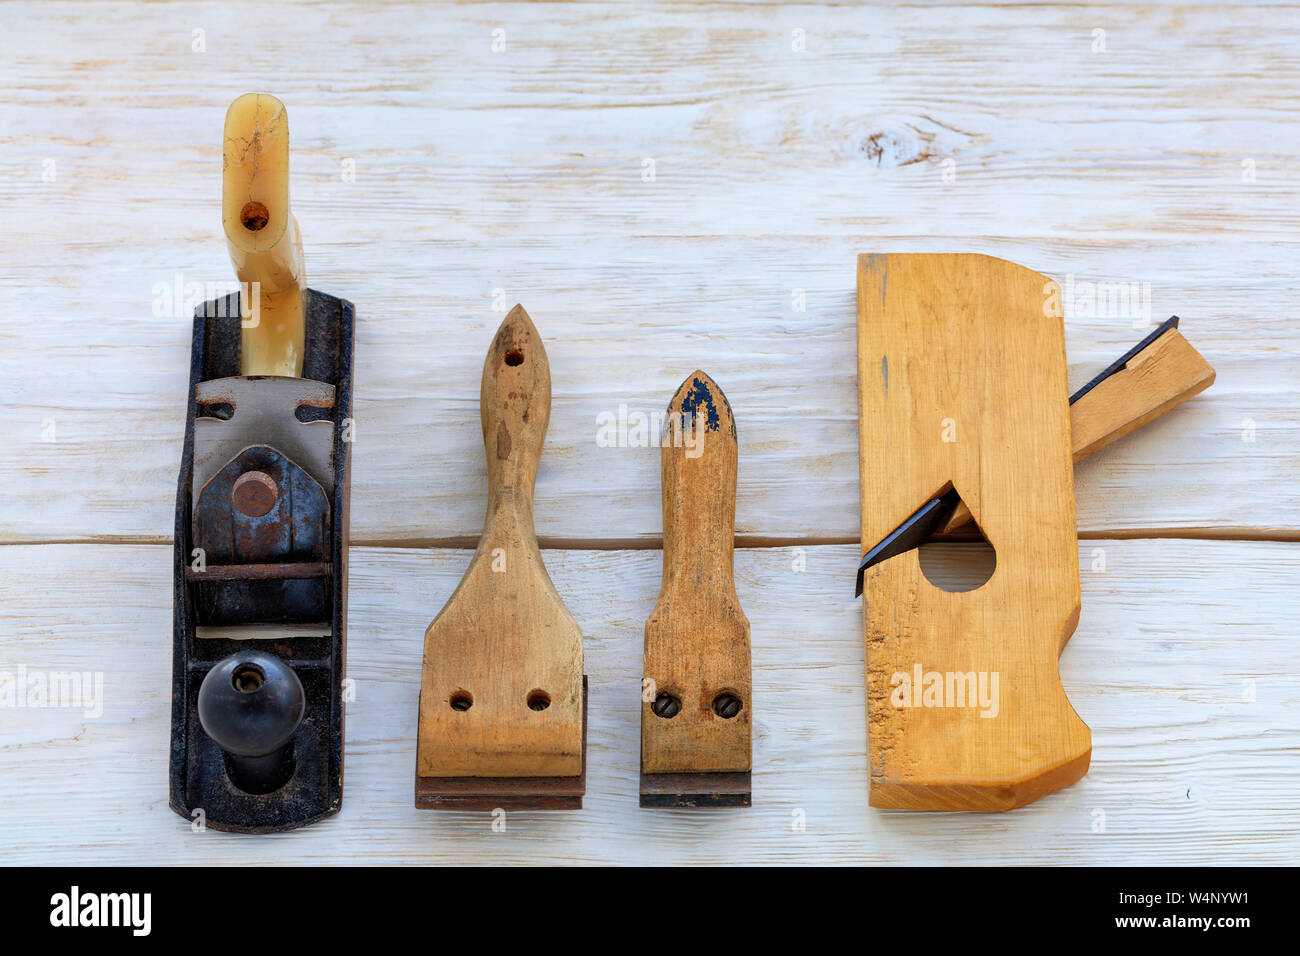 Old Carpentry Hand Tools Planers And Cycles Lie On A White Wooden Table Stock Photo Alamy